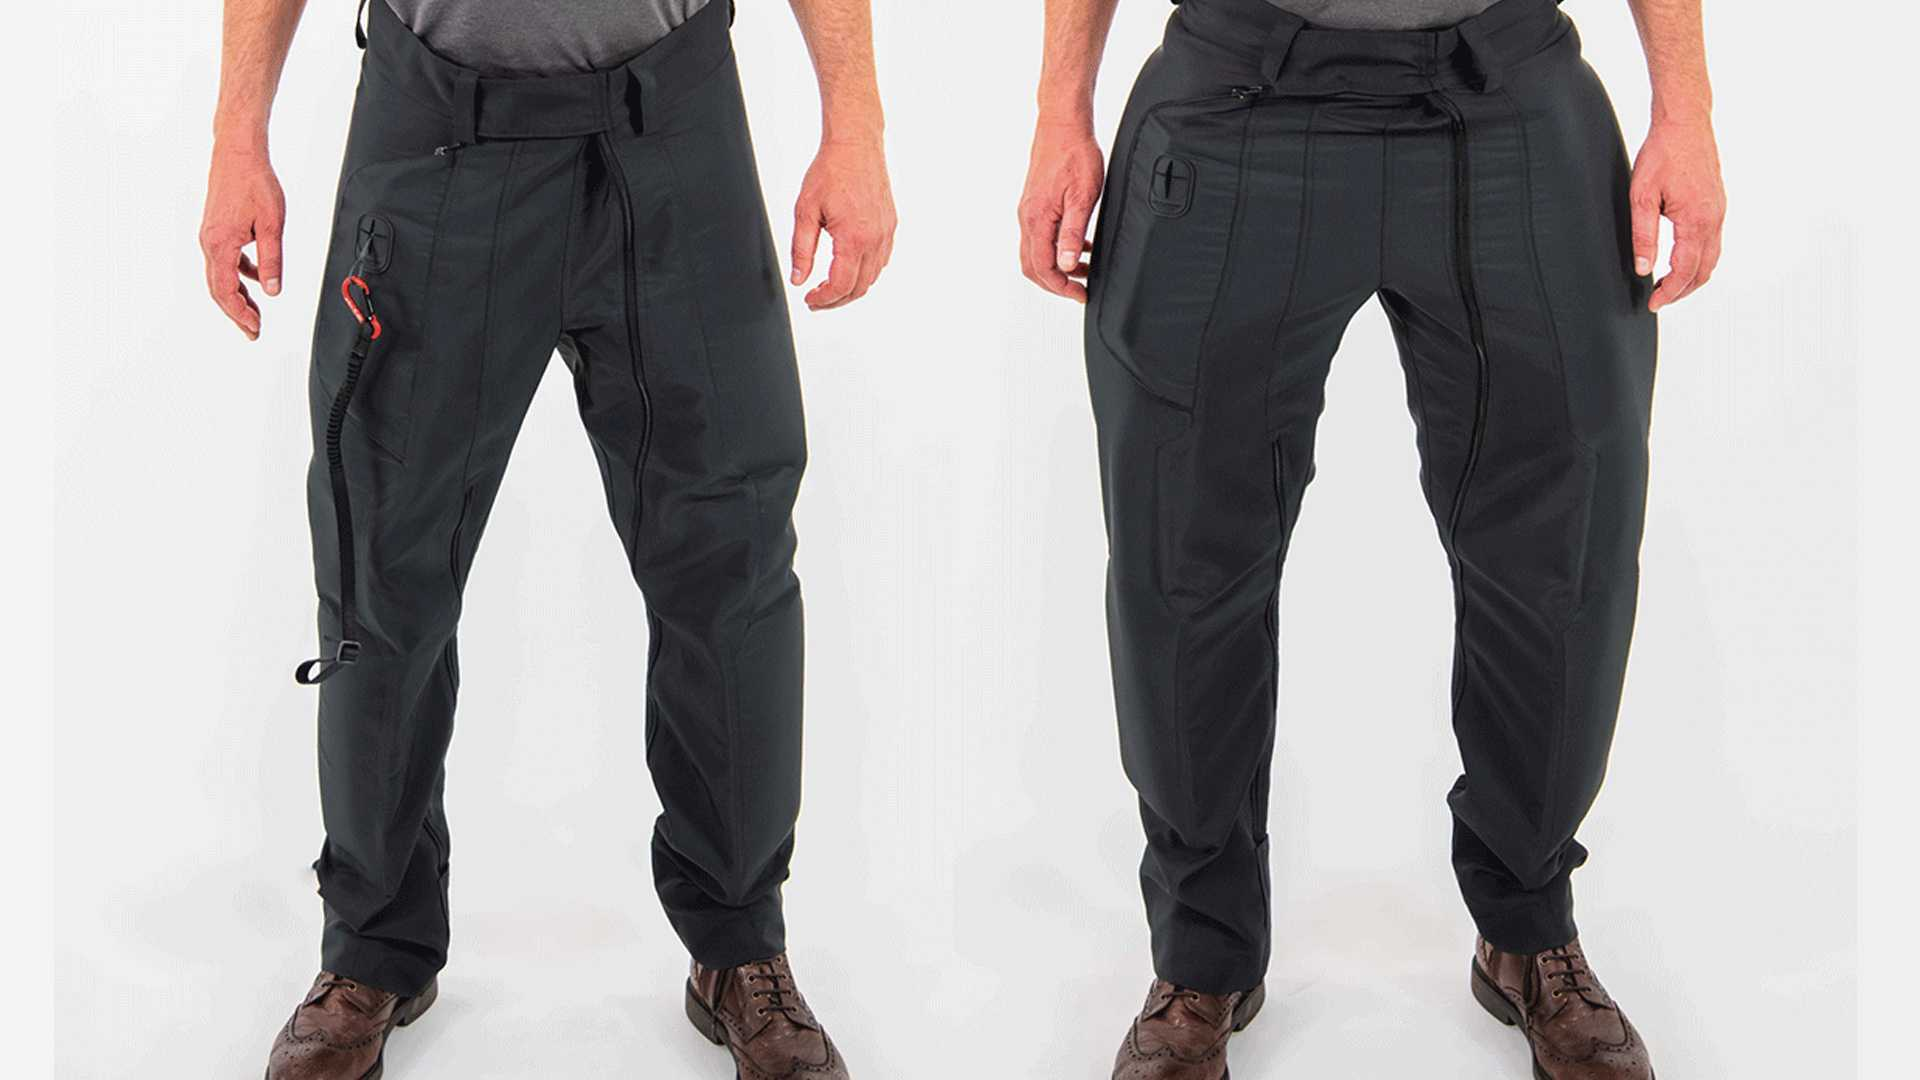 A front and rear view of the CX Free Rider airbag pants normal (left) and airbag deployed (right)